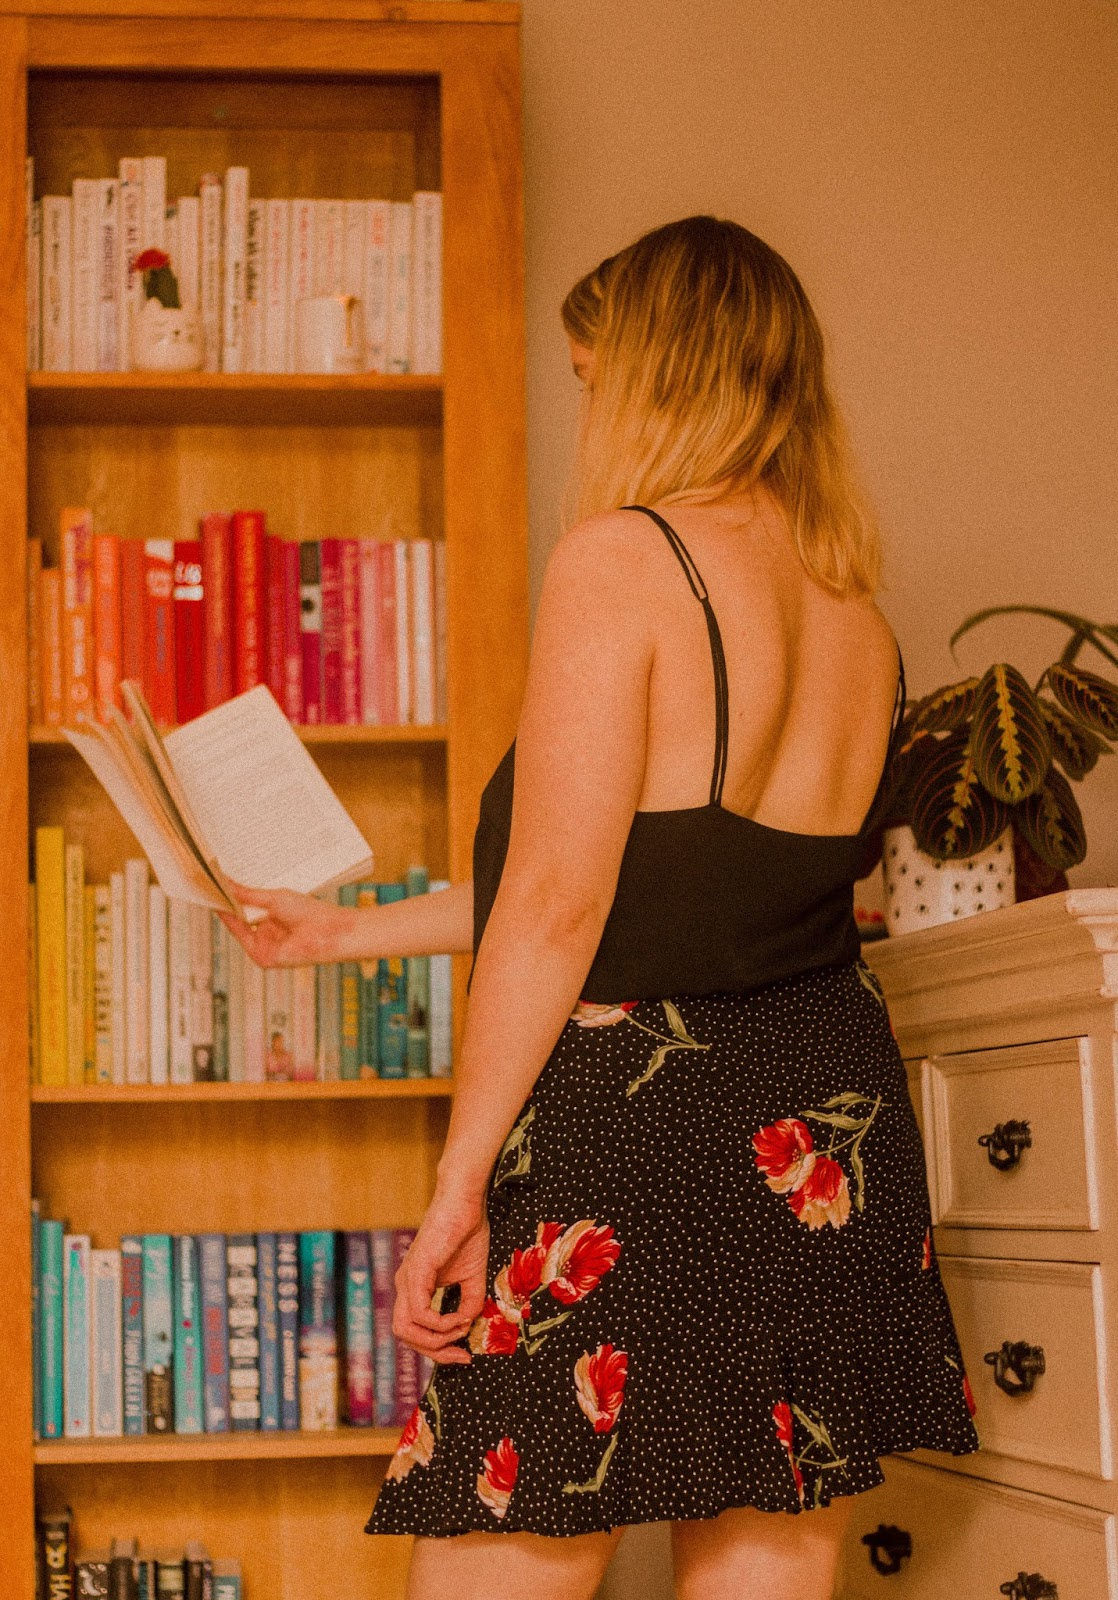 blonde girl stood reading in front of colourful bookcase full of books